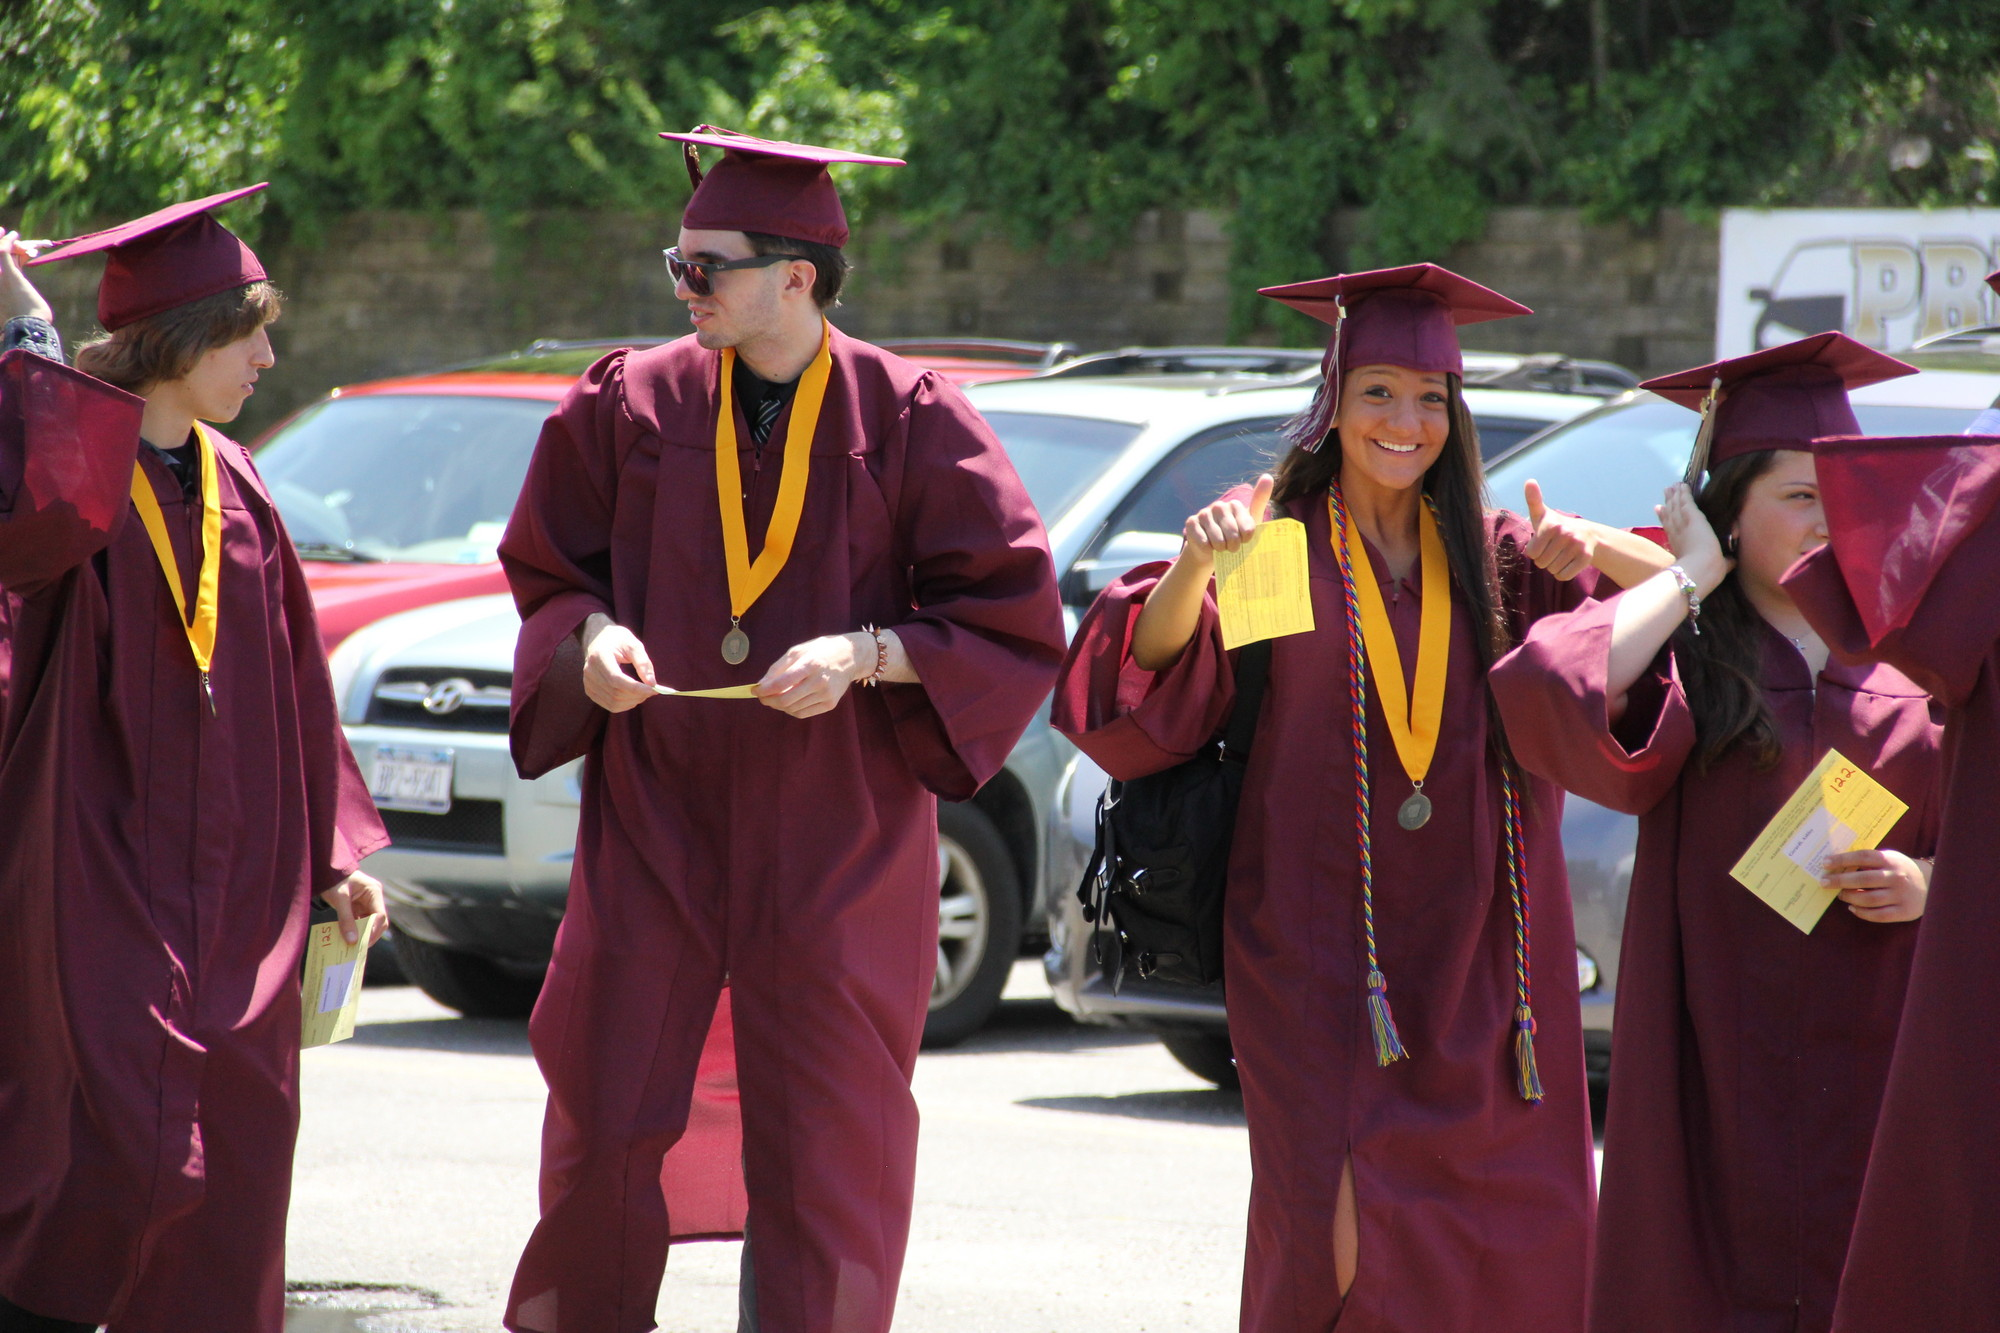 Elyssa Gershman, right, gave an enthusiastic thumbs-up during Mepham�s graduation procession.